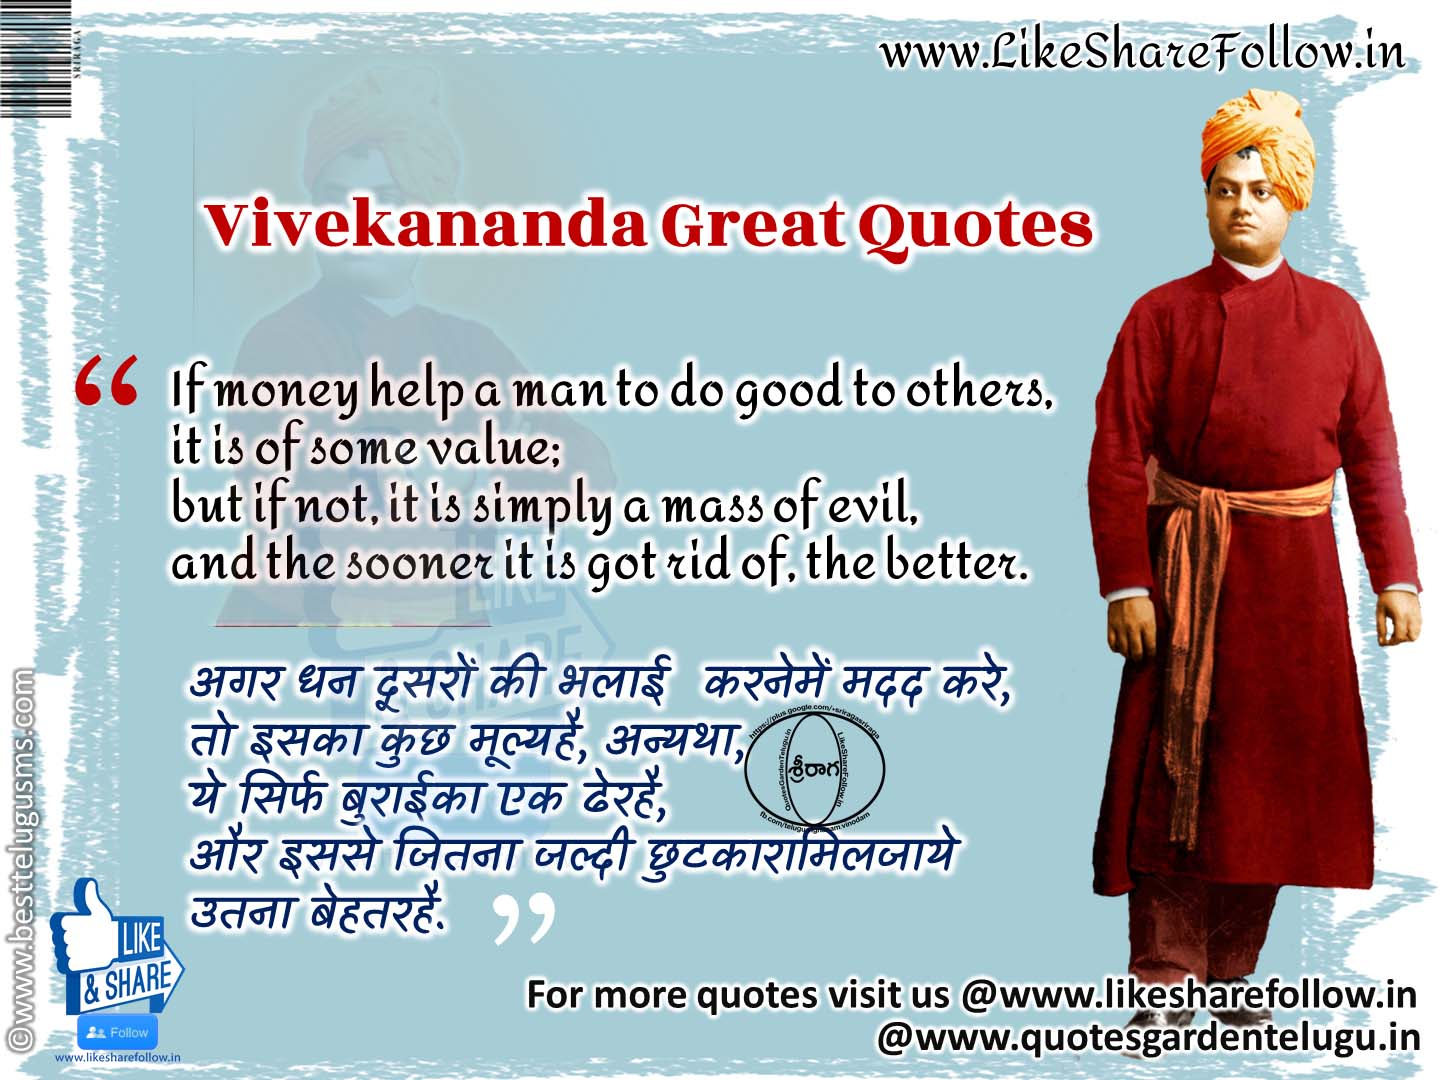 Quotes Vivekananda Vivekananda Quotes In English And Hindi  Like Share Follow